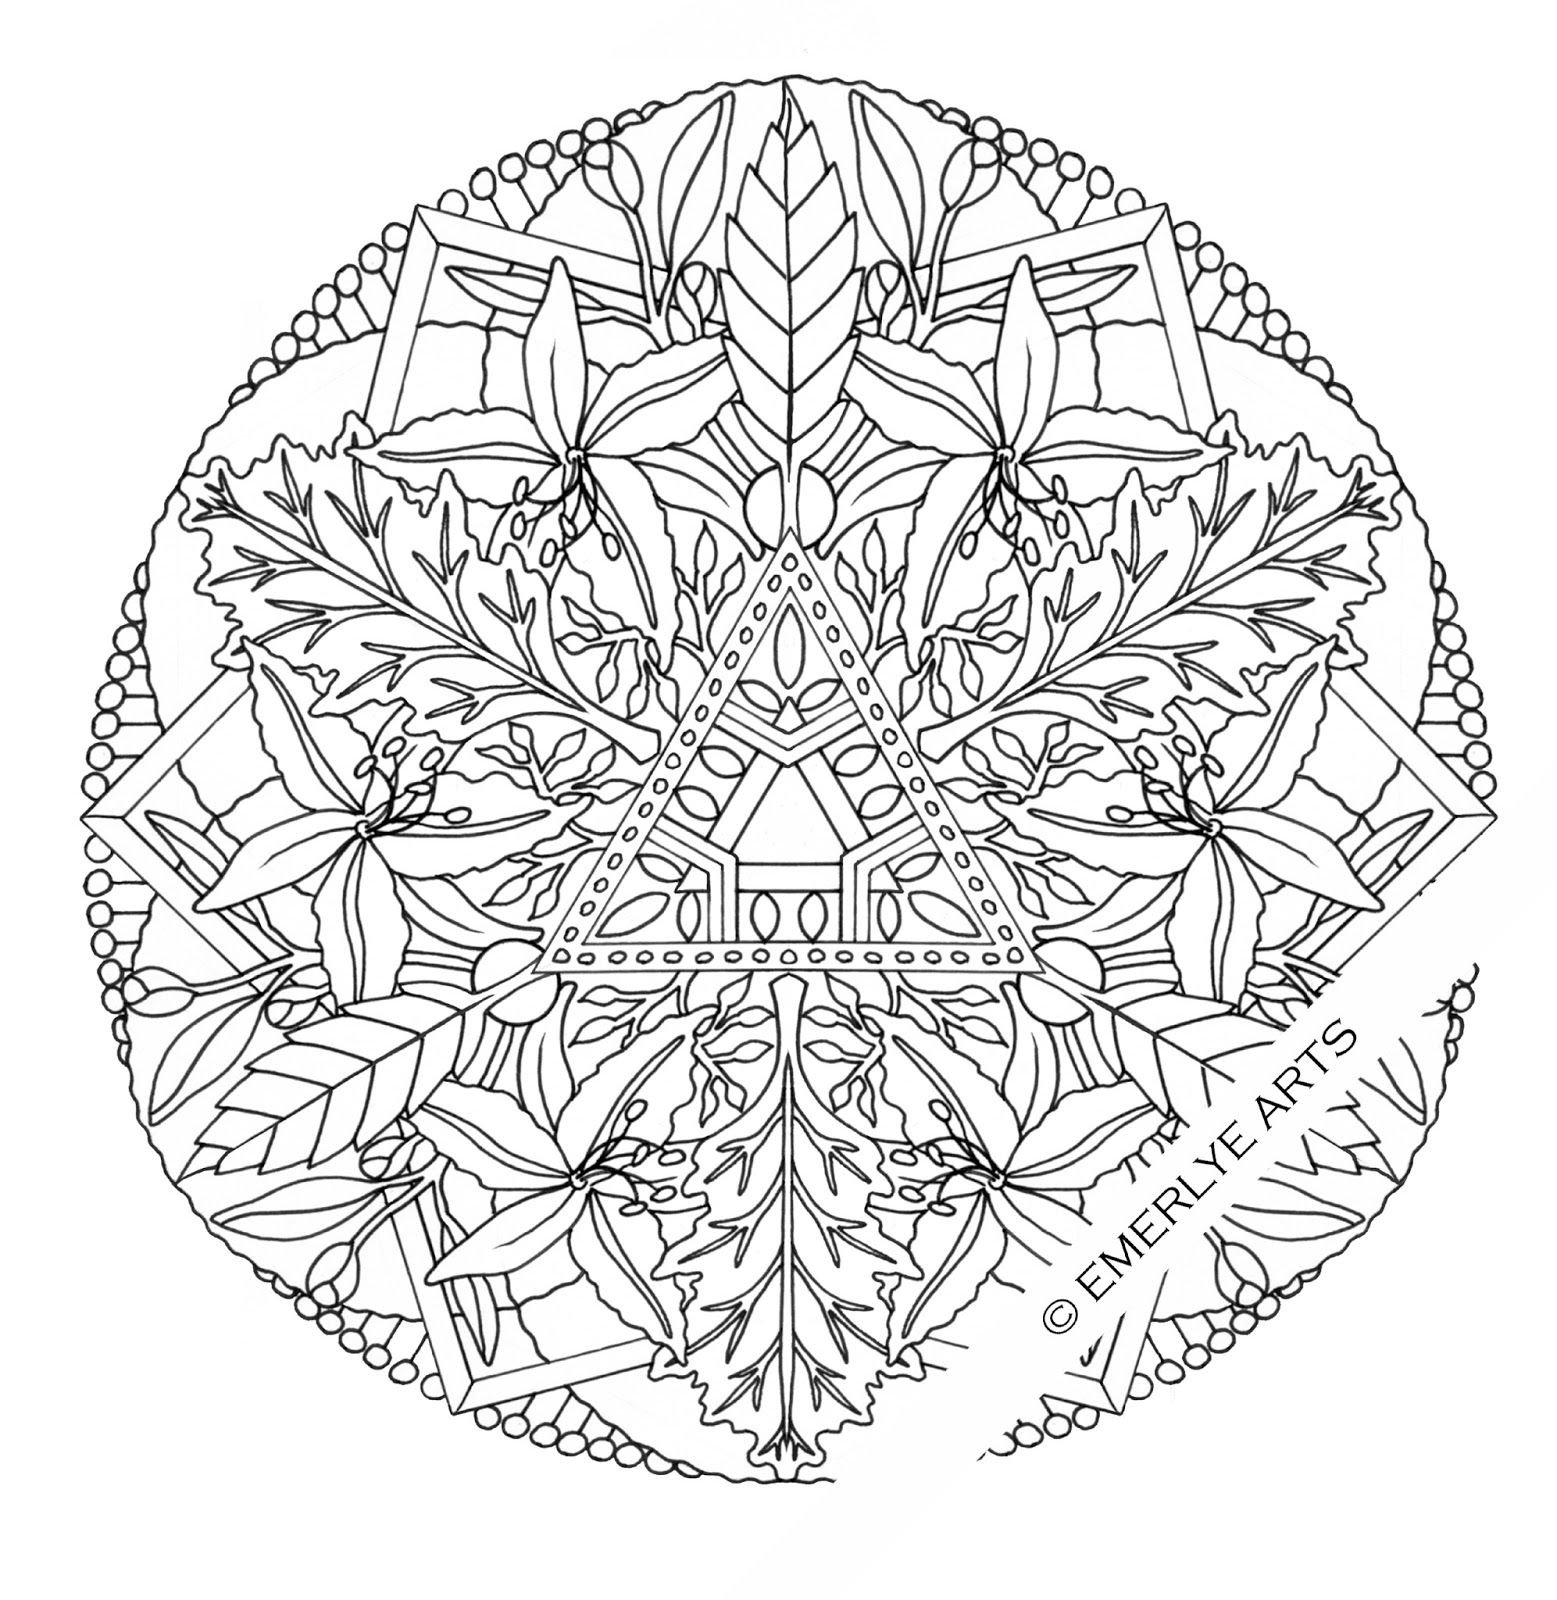 Detailed Coloring Pages For Adults | ... and kirigami ...Detailed Mandala Coloring Pages For Adults